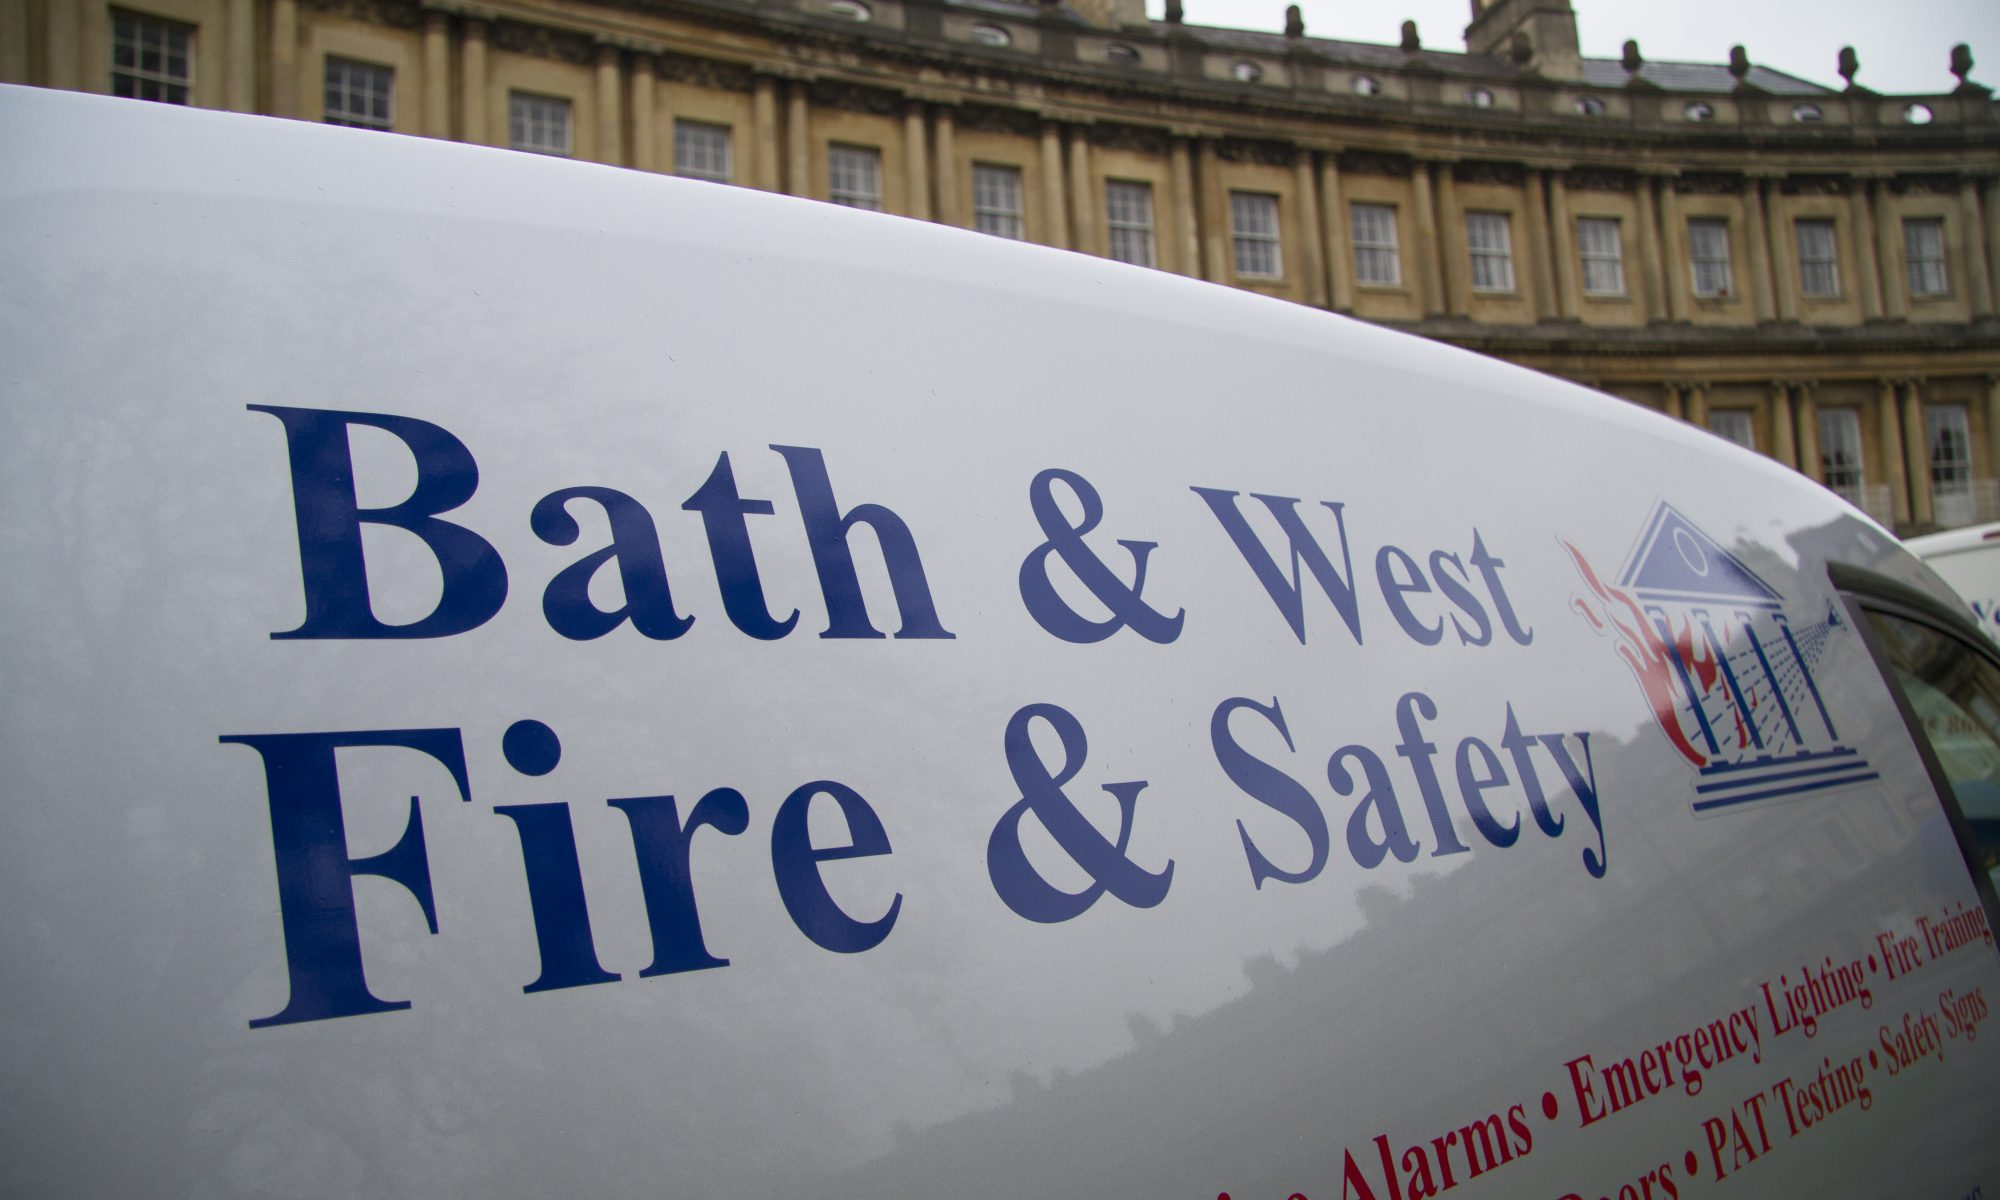 Bath & West Fire & Safety